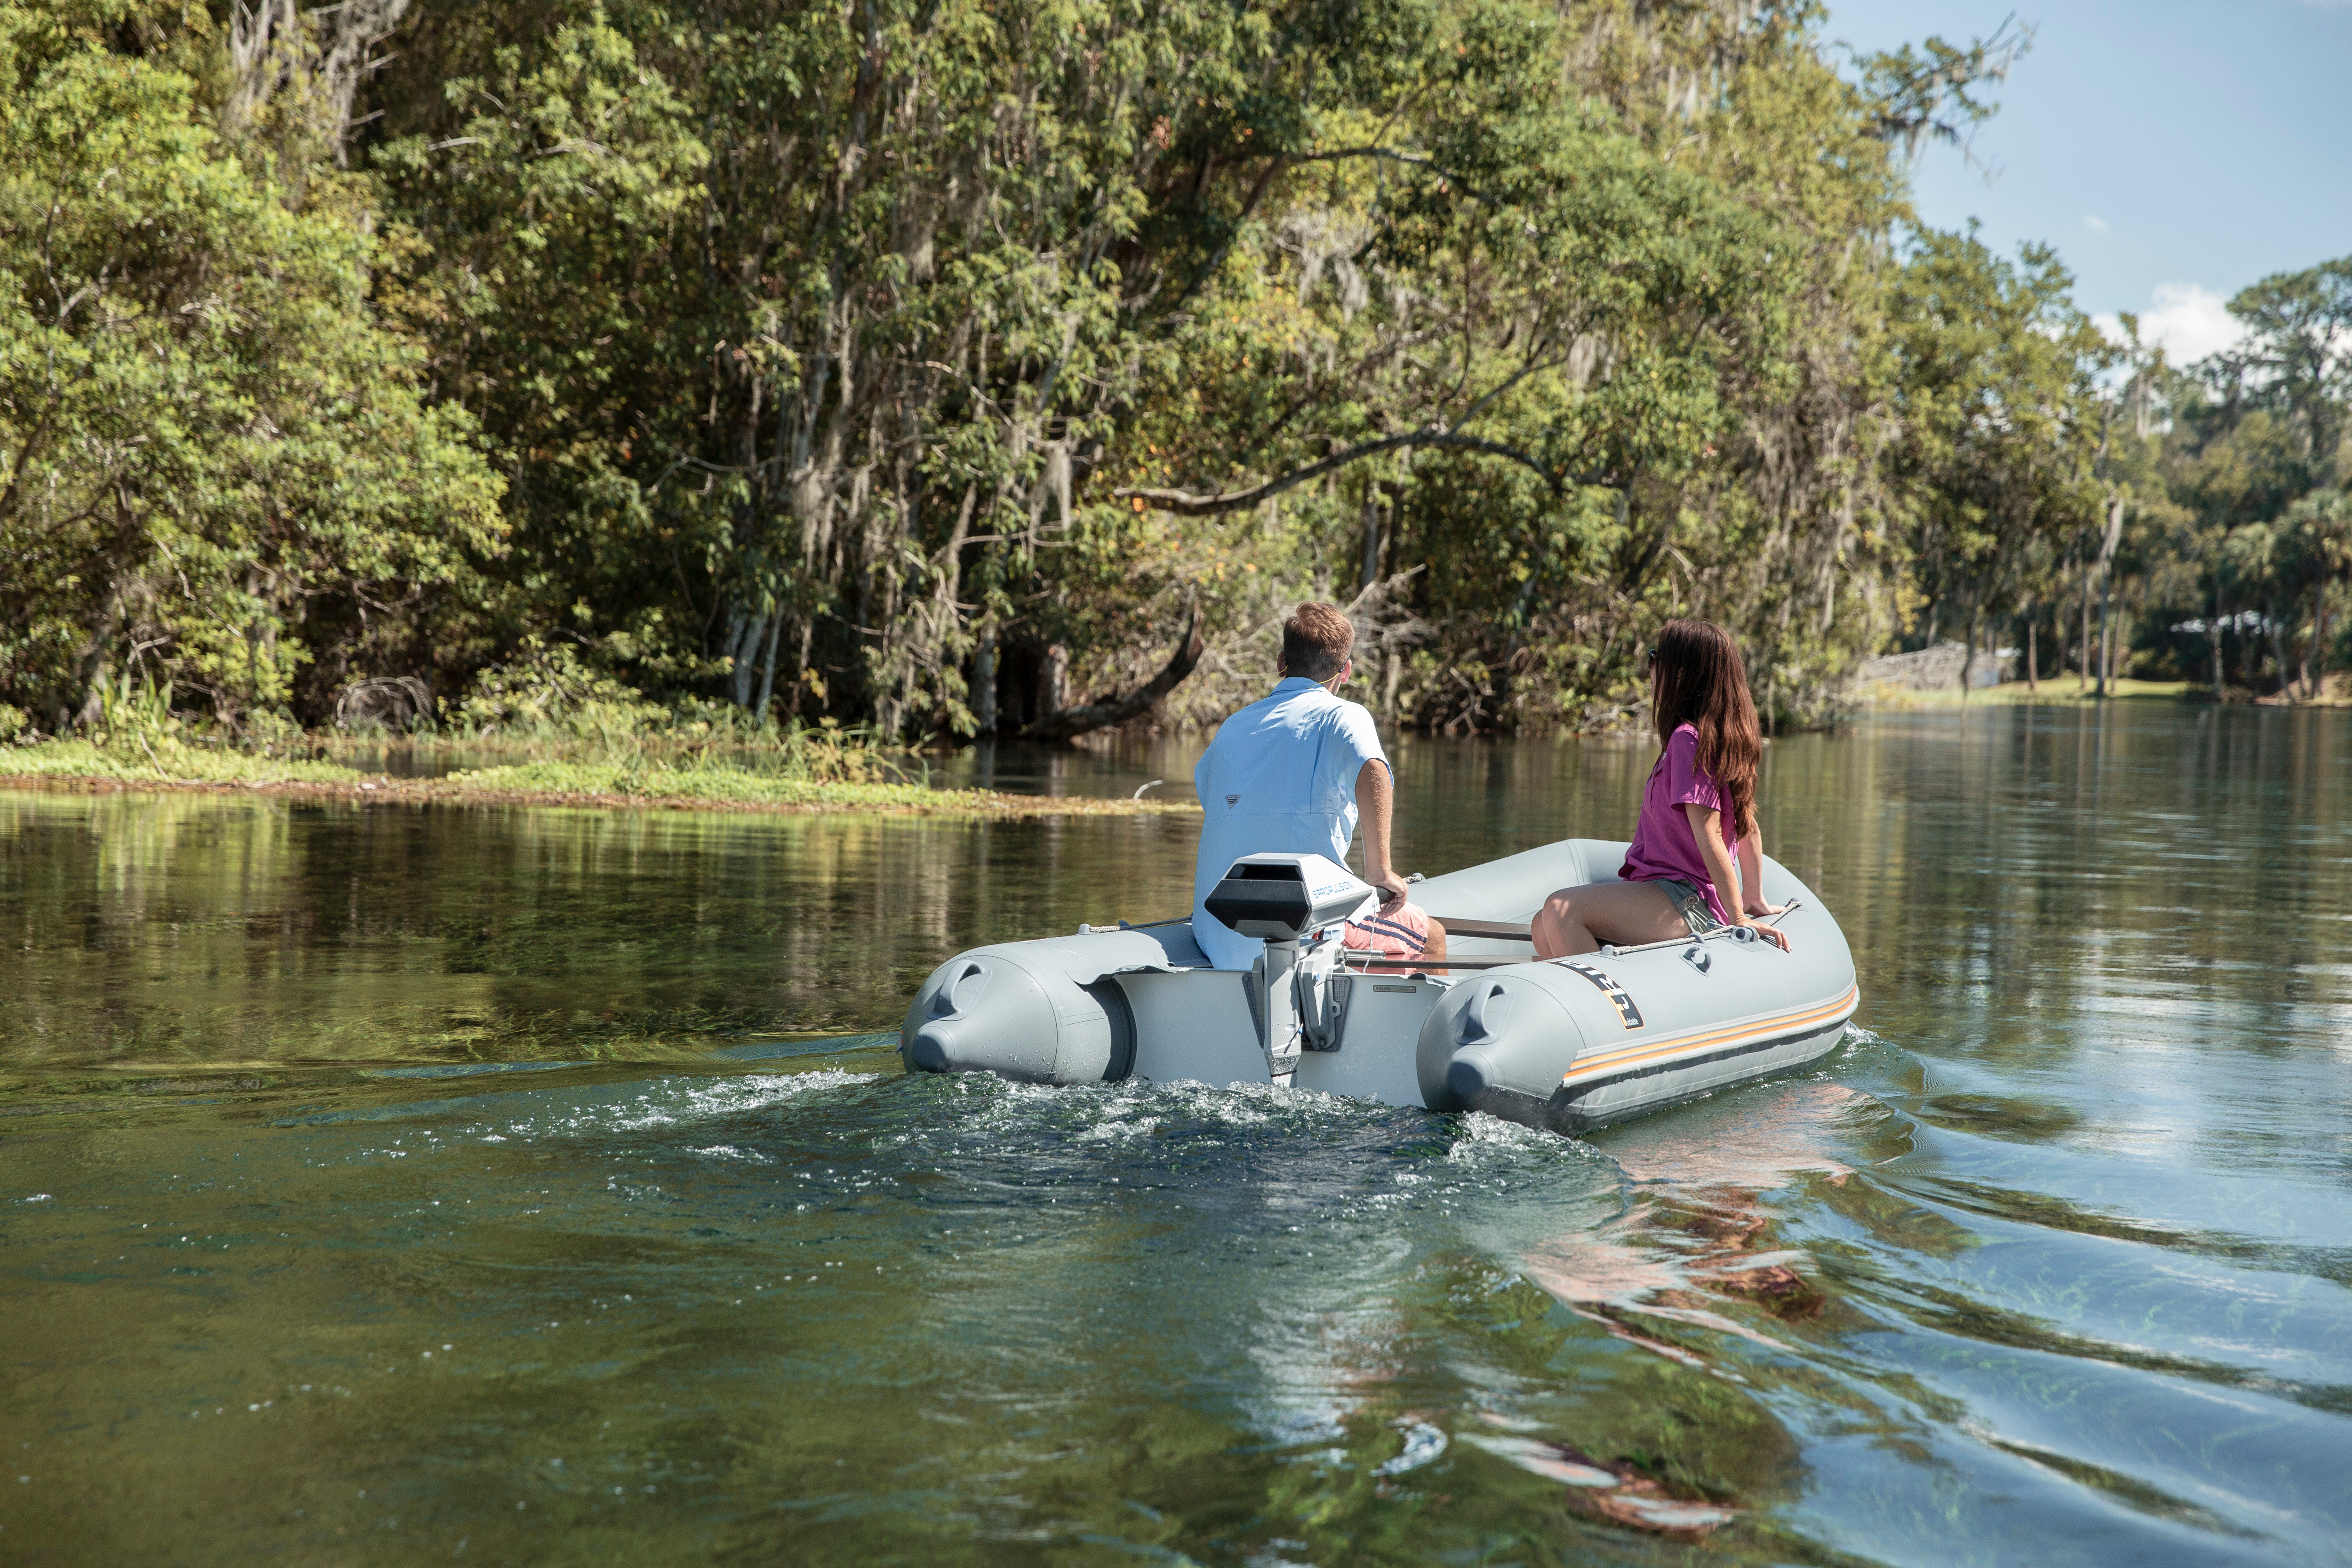 Navy 3 0 Electric Outboard Motor 6 HP | ePropulsion